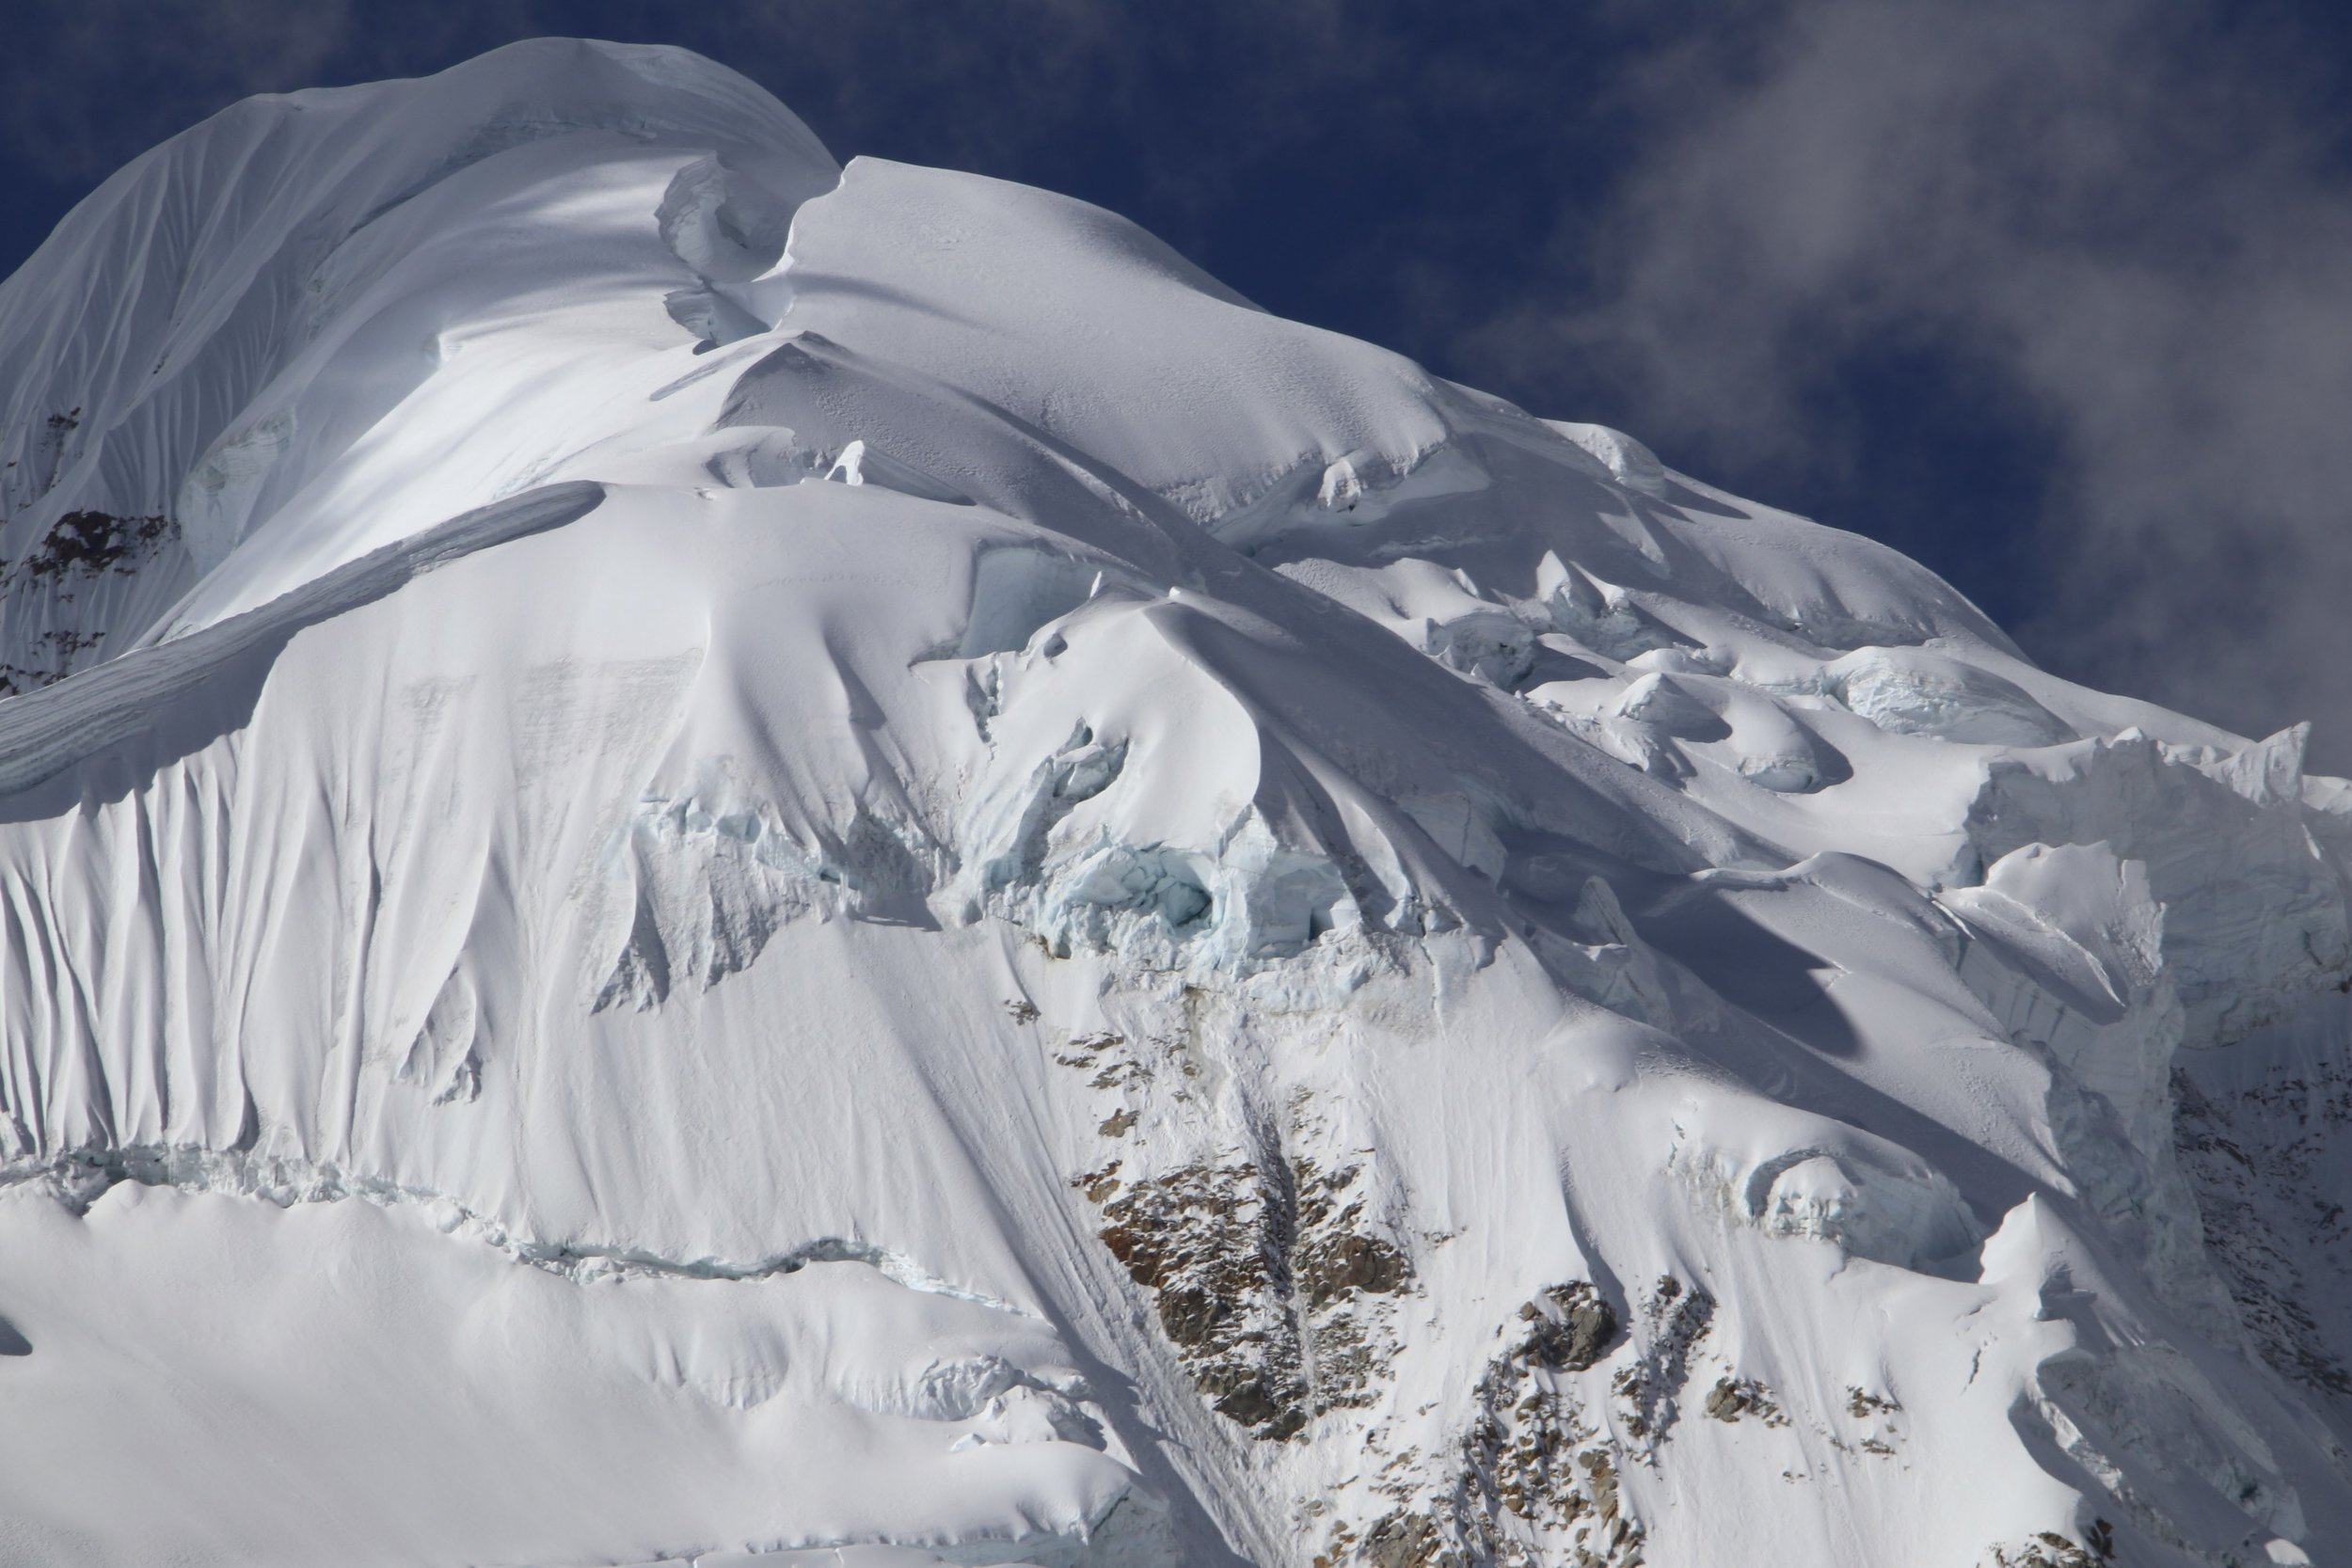 The upper section of Illampu. The glacial changes make the climbing more challenging,